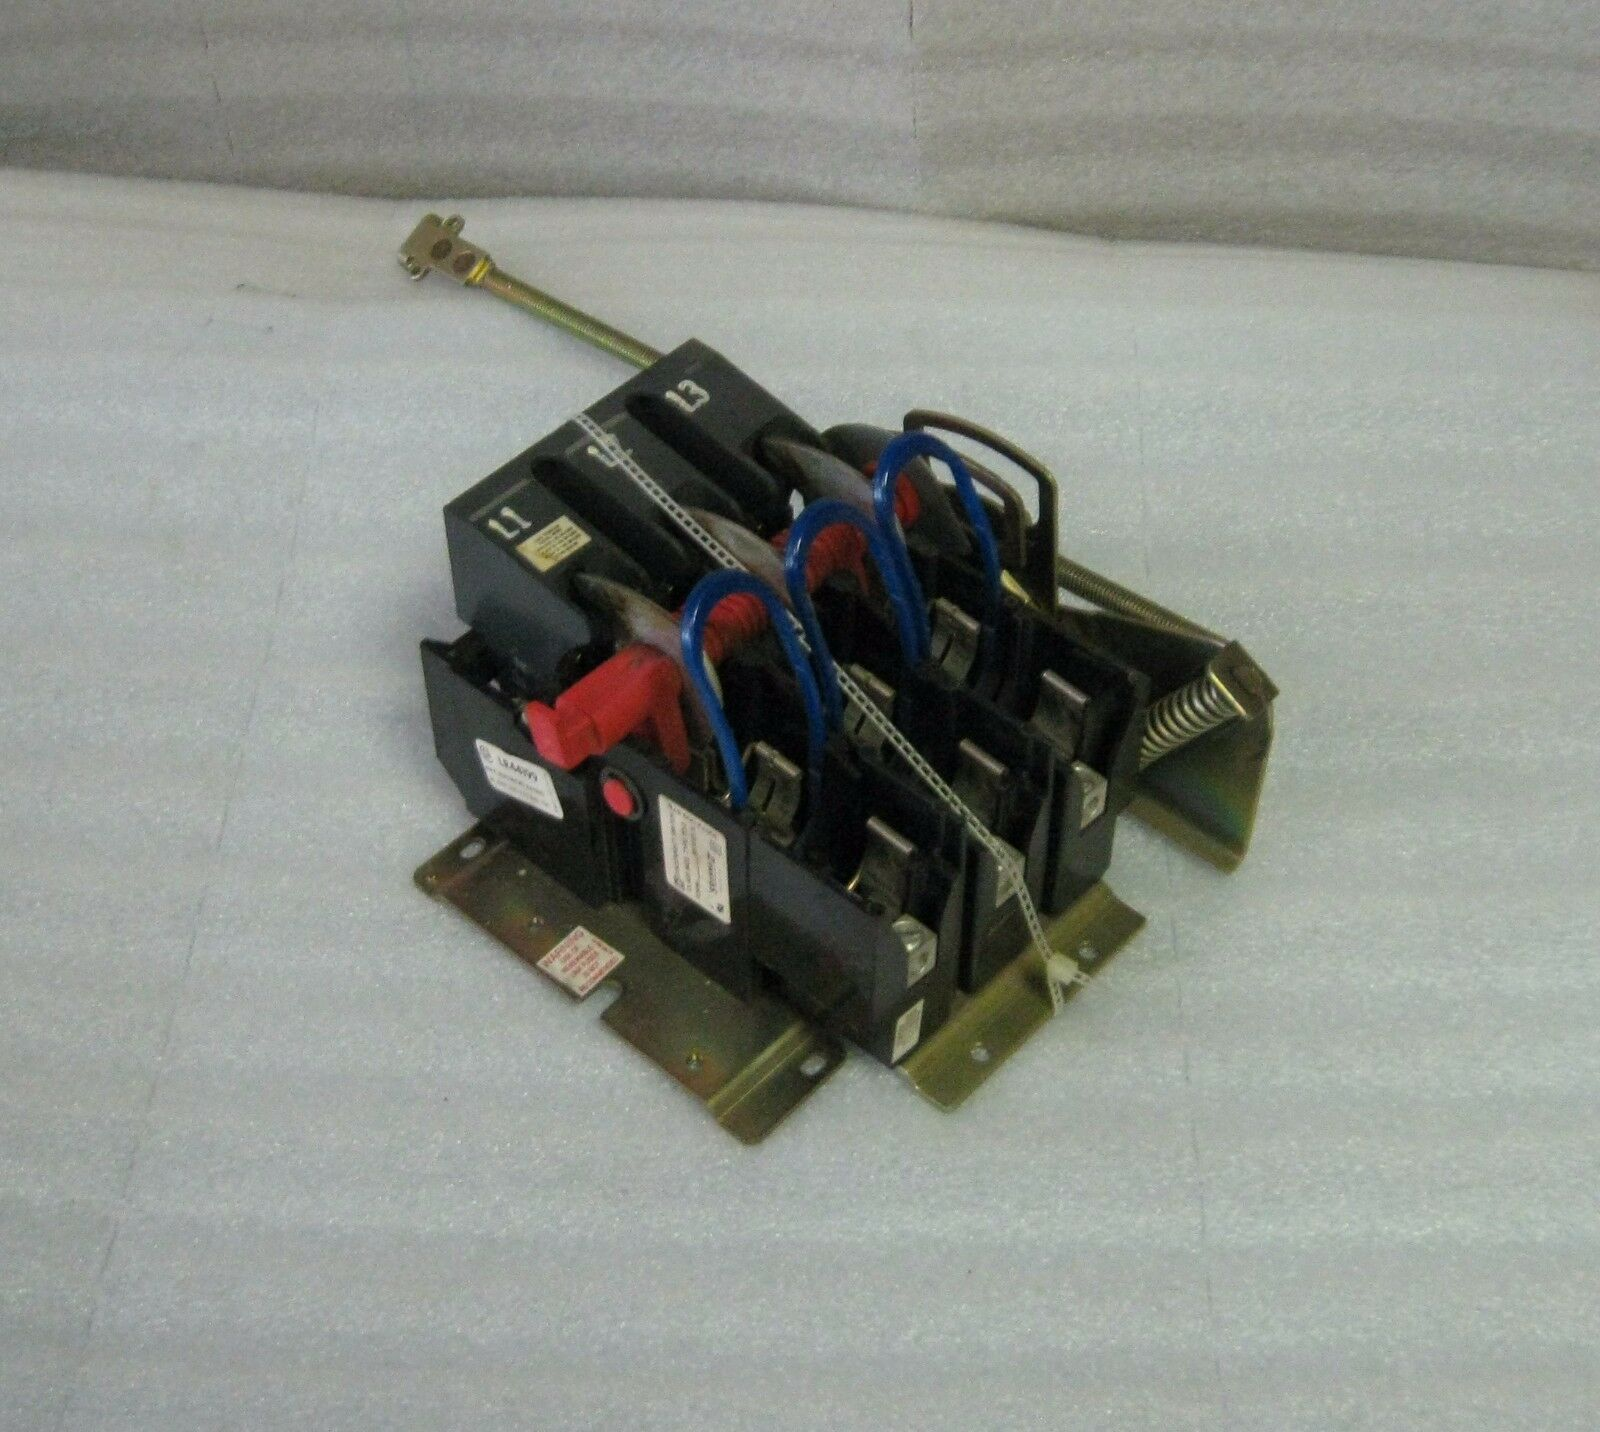 Square D Disconnect, Class 9422, Type TD-3, Complete w/ Mounting Plate, Used